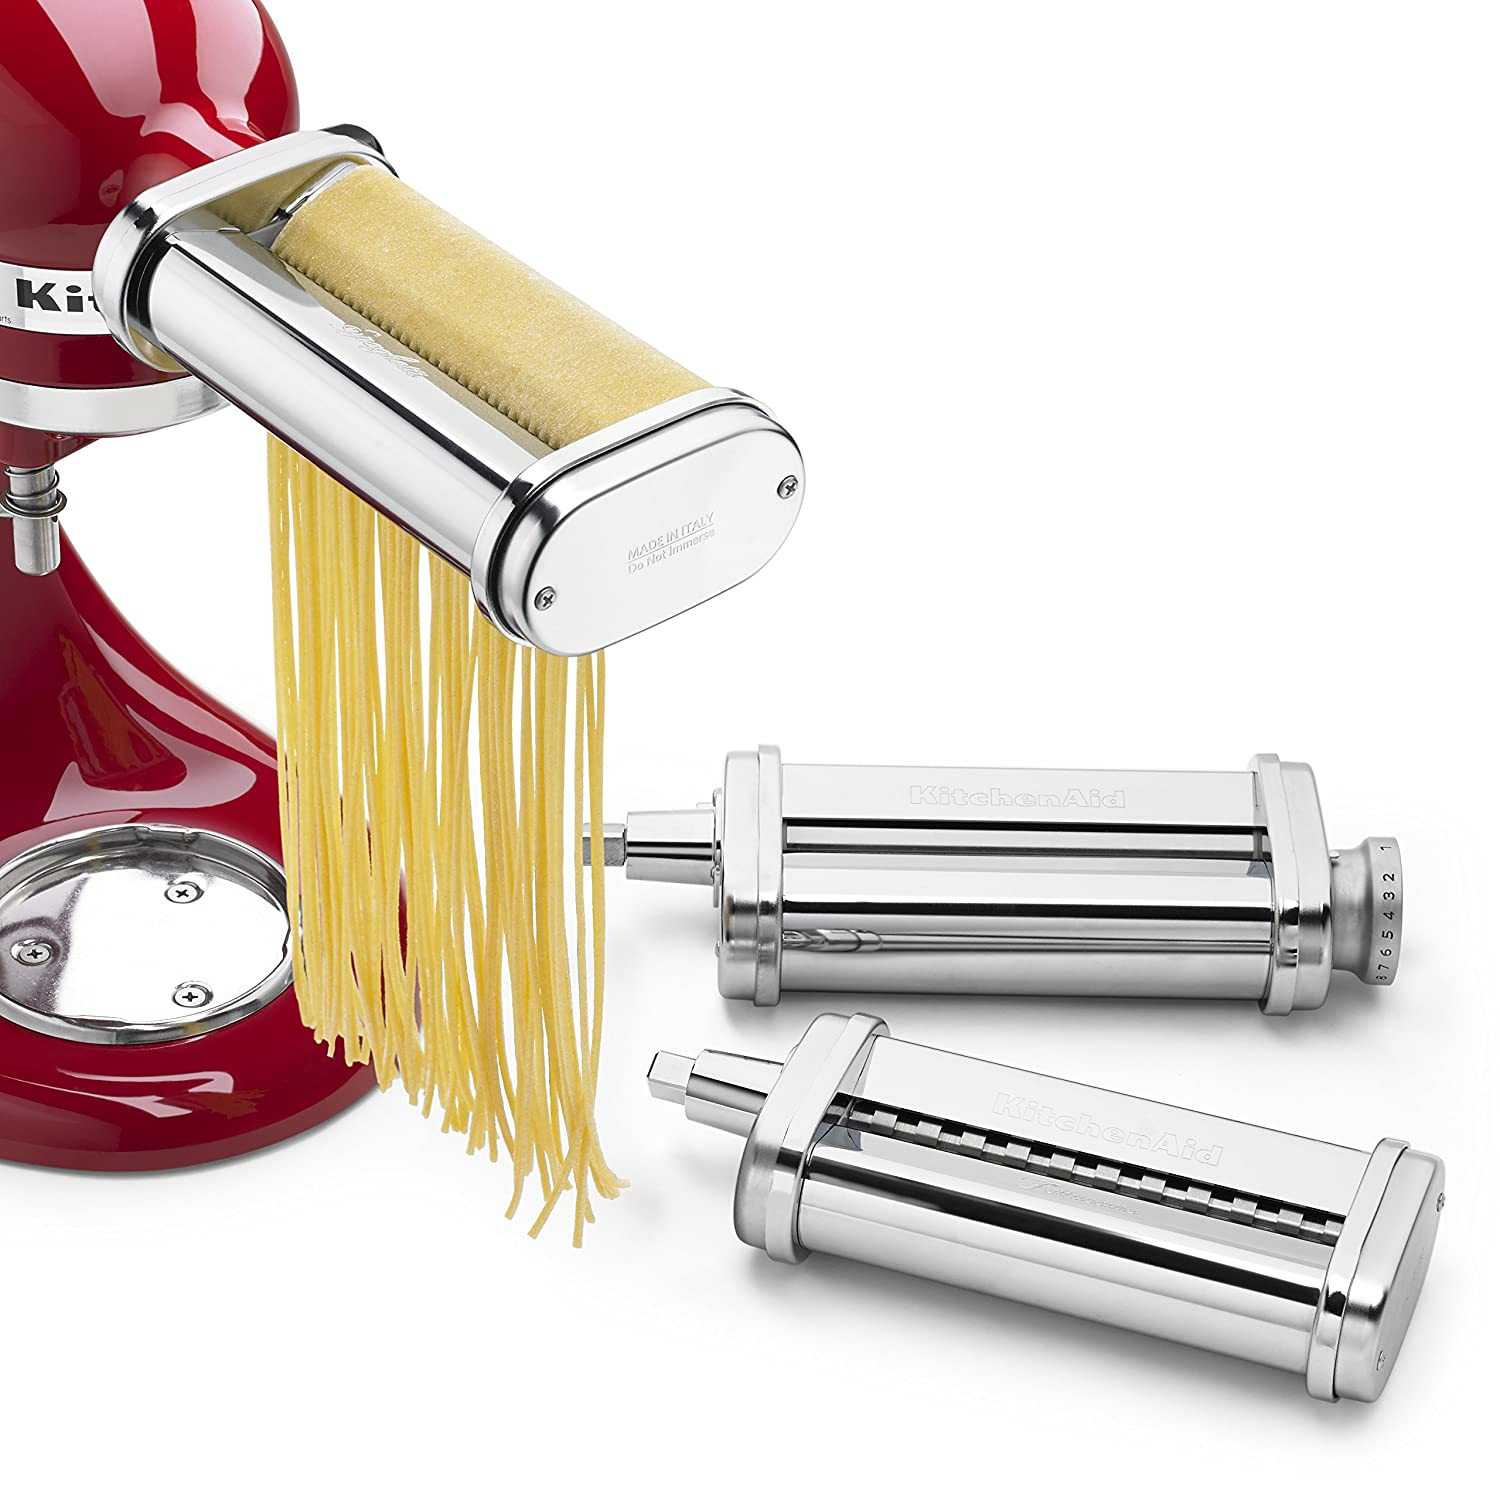 KitchenAid KSMPRA 3 Piece Pasta Roller & Cutter Attachment Set, Silver